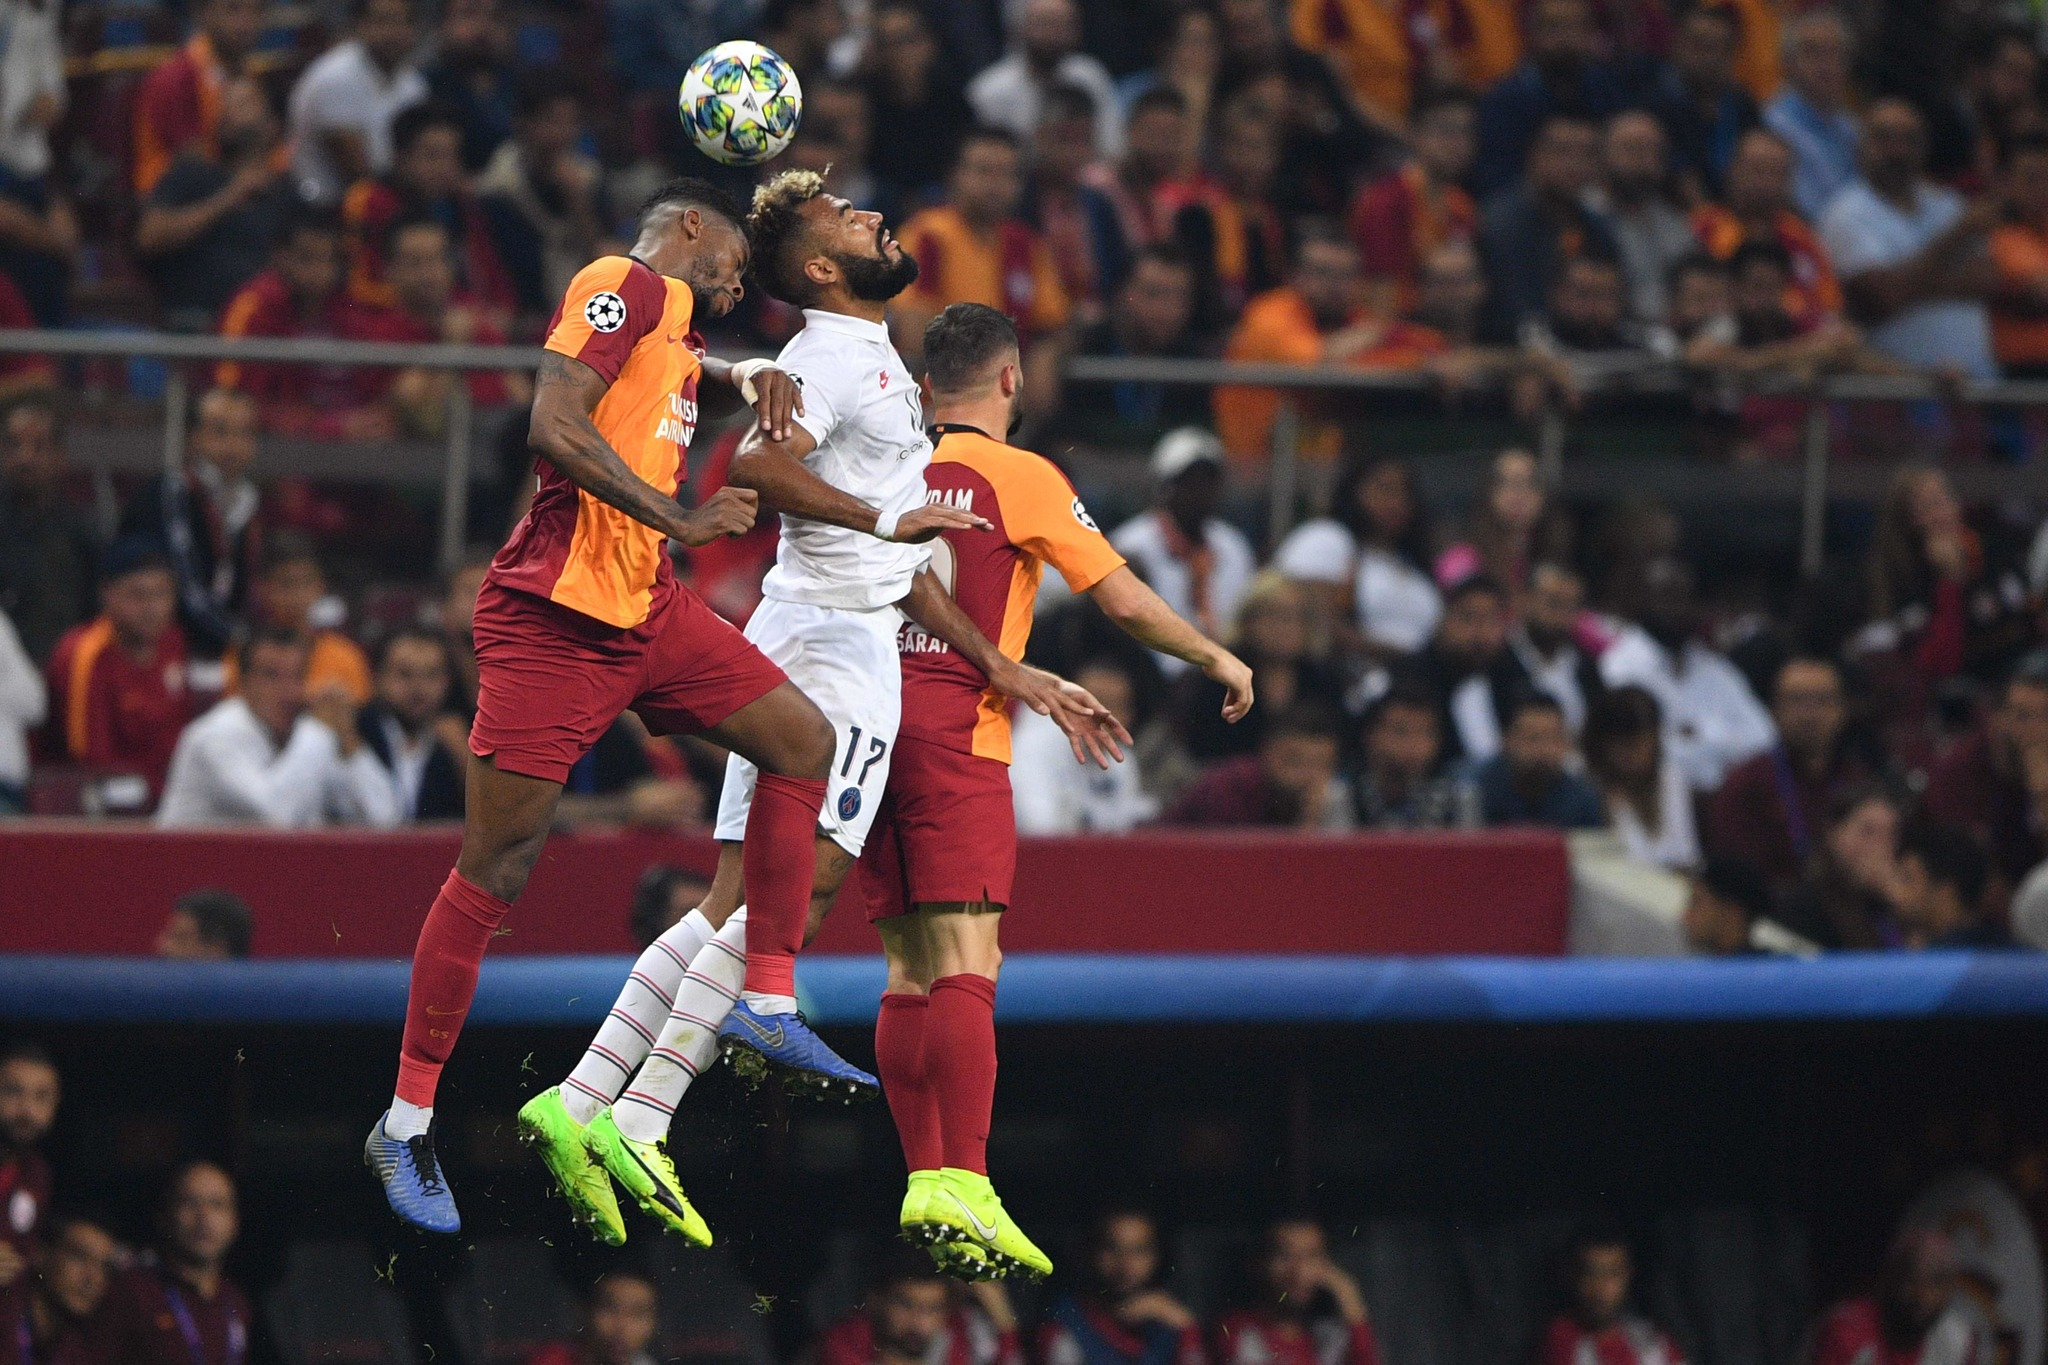 Galatasarays Brazilian defender <HIT>Marcao</HIT> Teixeira (L) vies with Paris Saint-Germains Cameroon forward Eric Maxim Choupo Moting (C) during the UEFA Champions League football match between Galatasaray and Paris Saint-Germain (PSG), on October 01, 2019 at <HIT>Ali</HIT><HIT>Sami</HIT><HIT>Yen</HIT> Spor Kompleksi in Istanbul. (Photo by Bulent Kilic / AFP)